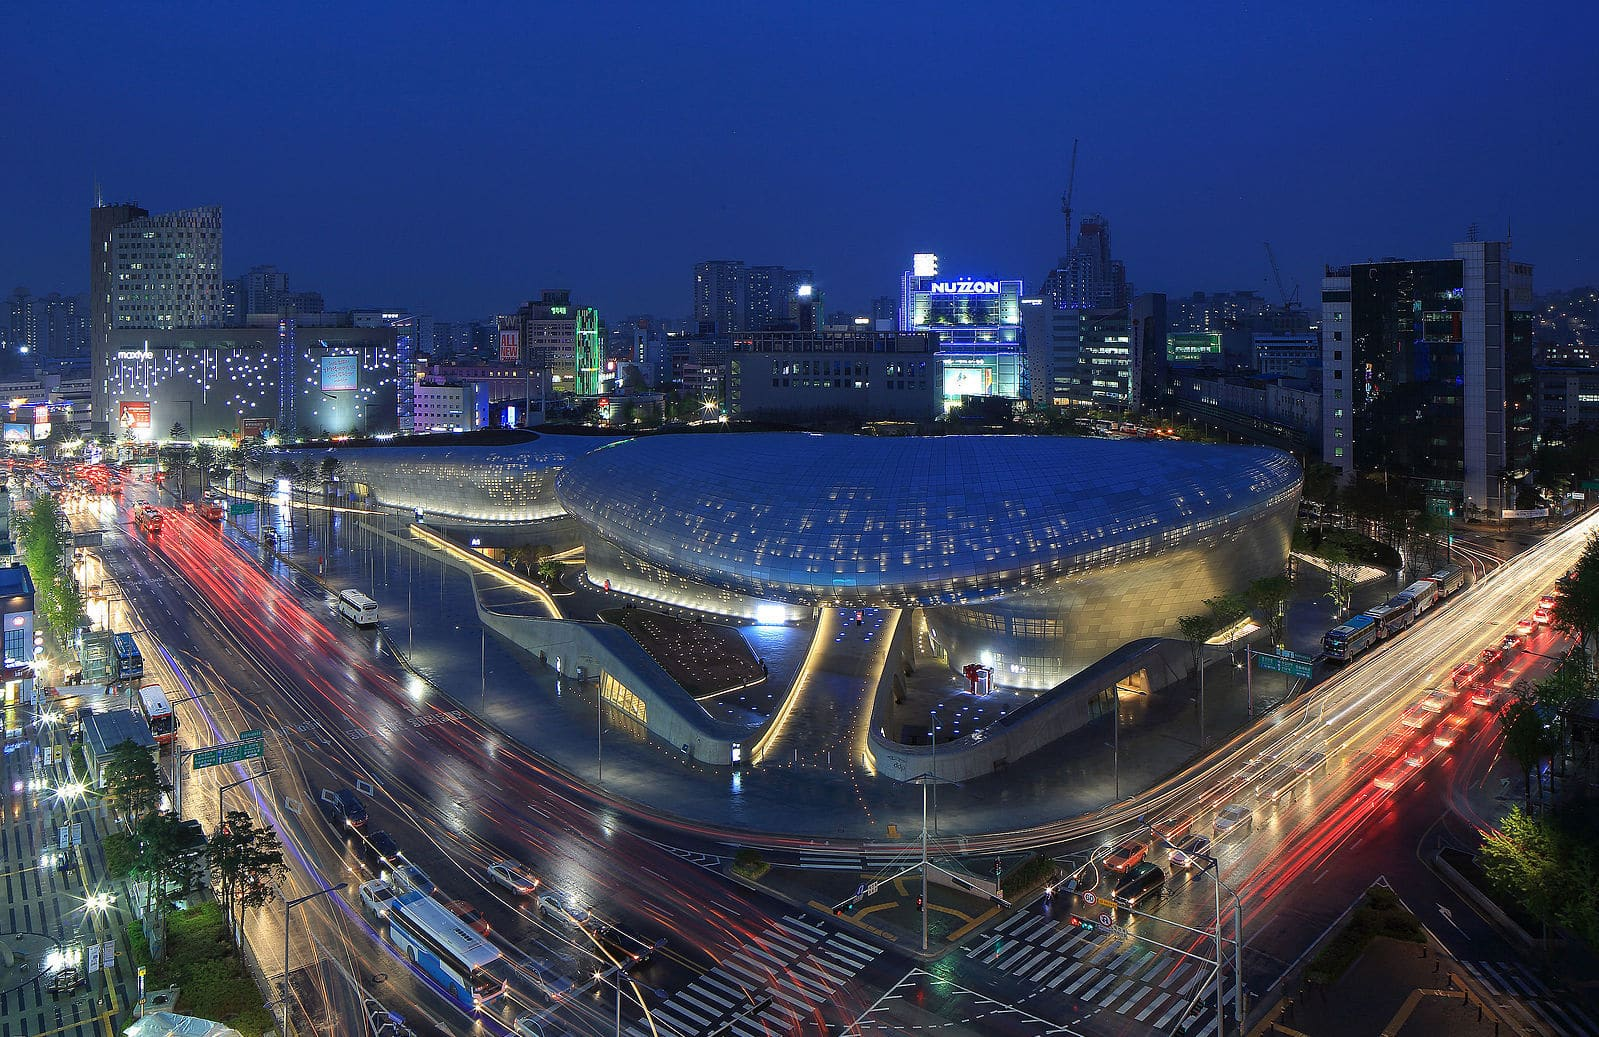 The always bustling nightlife of Dongdaemun